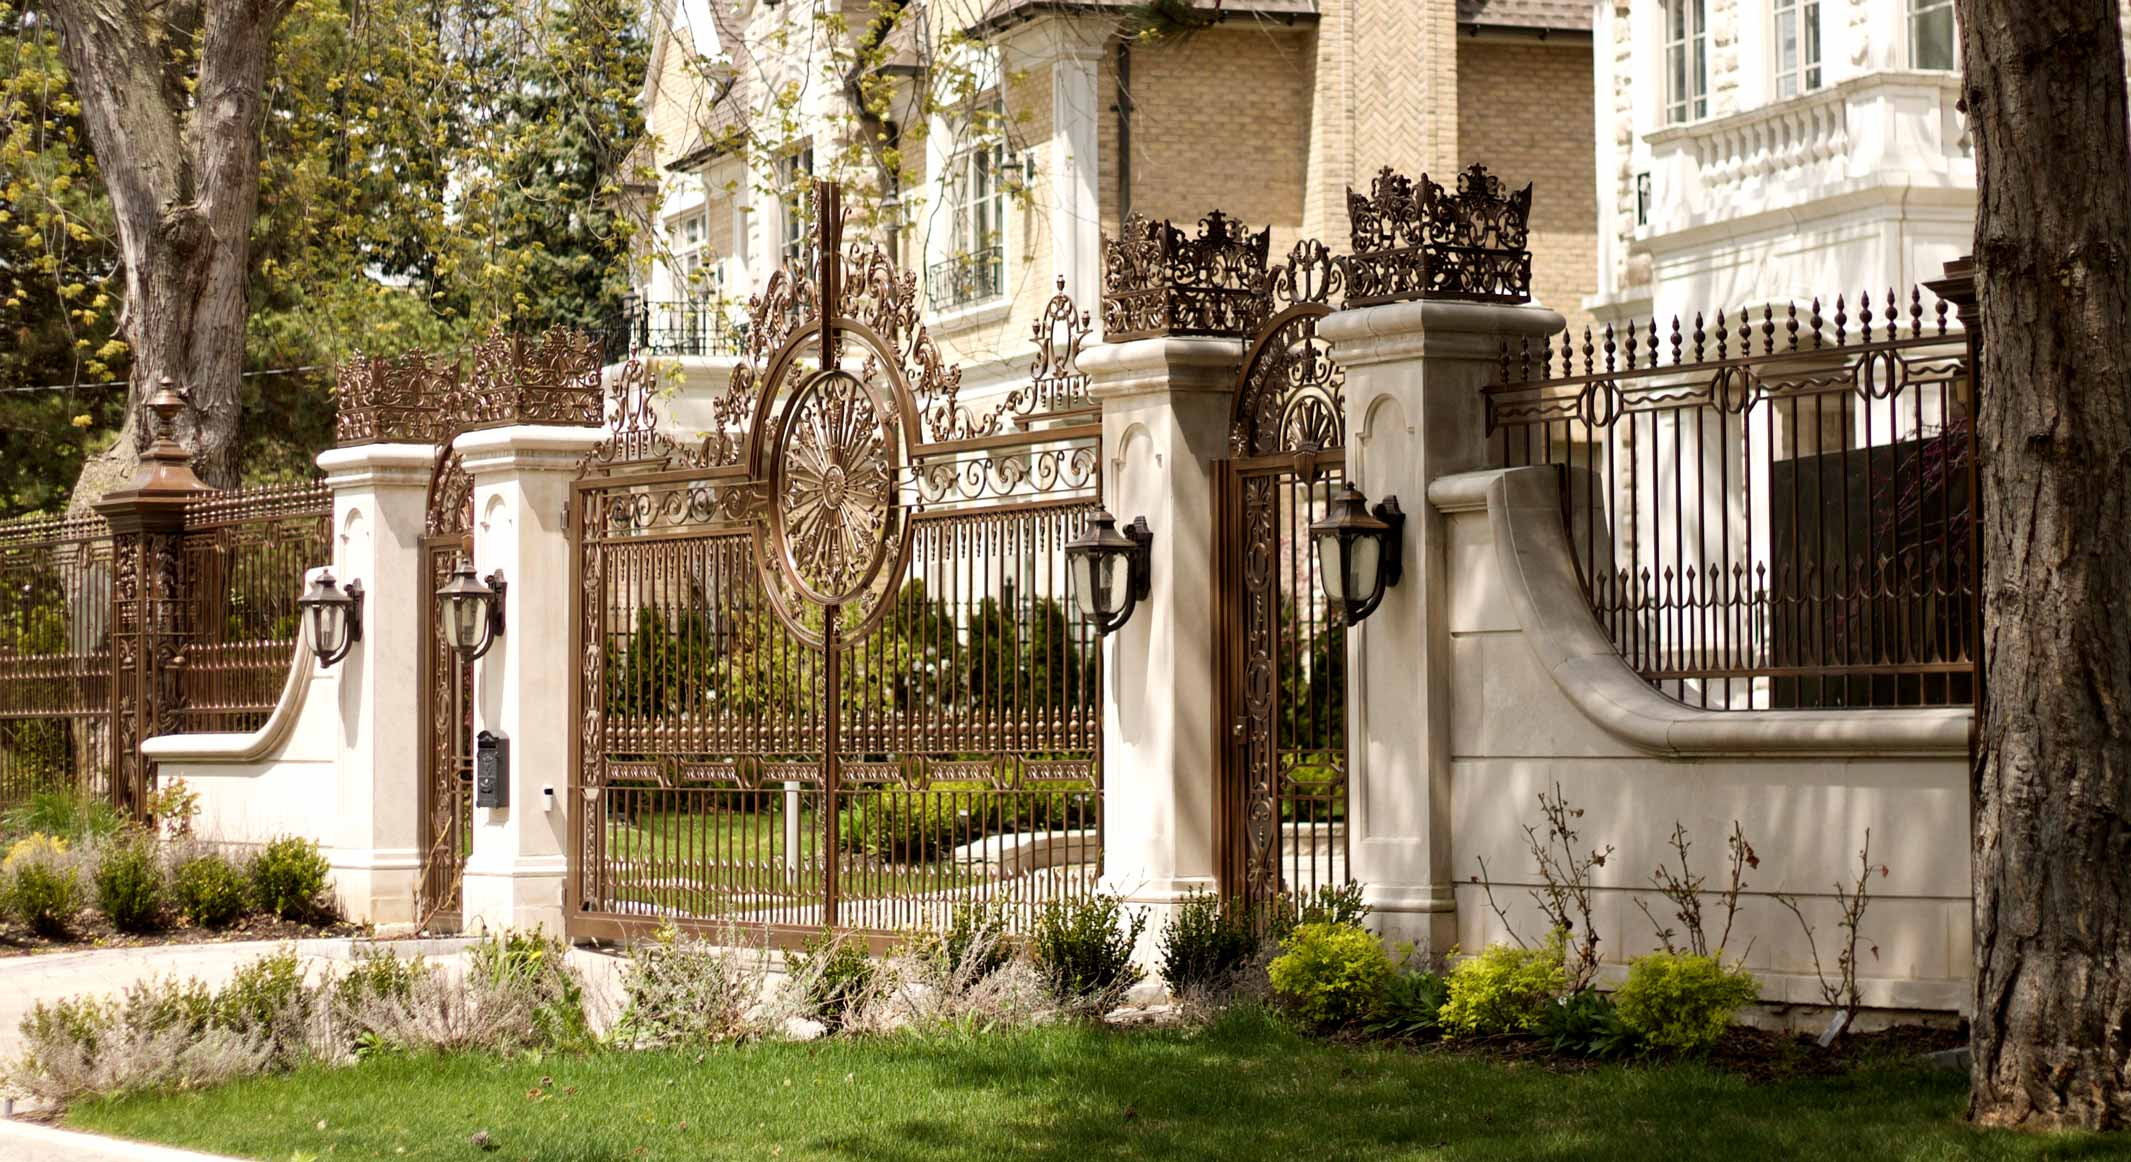 5 Key Factors to Consider When Choosing A Gate for Your Home